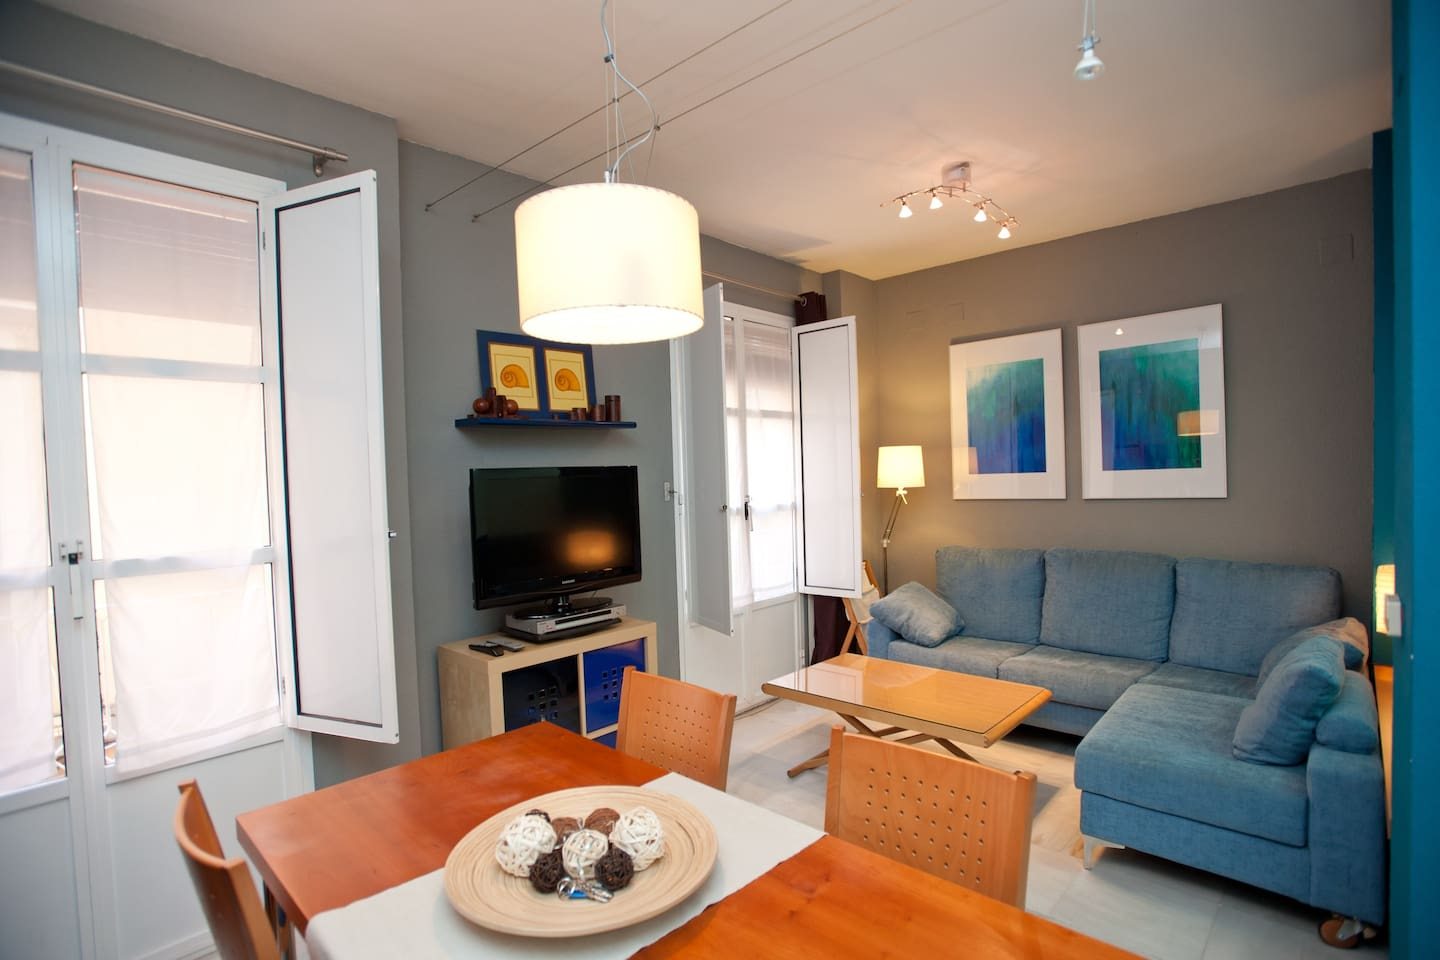 Salon + Comedor / Living room  + Dining room